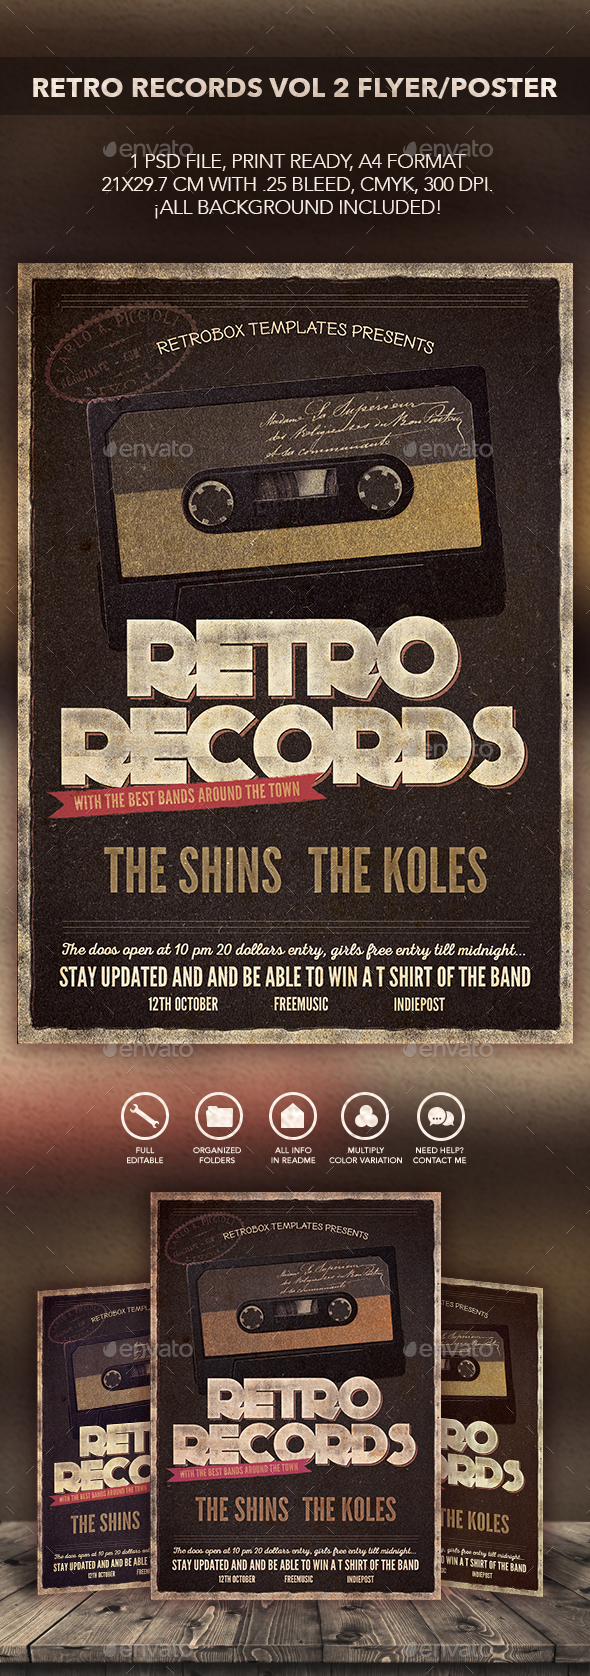 Retro Records Vol2 Flyer Poster